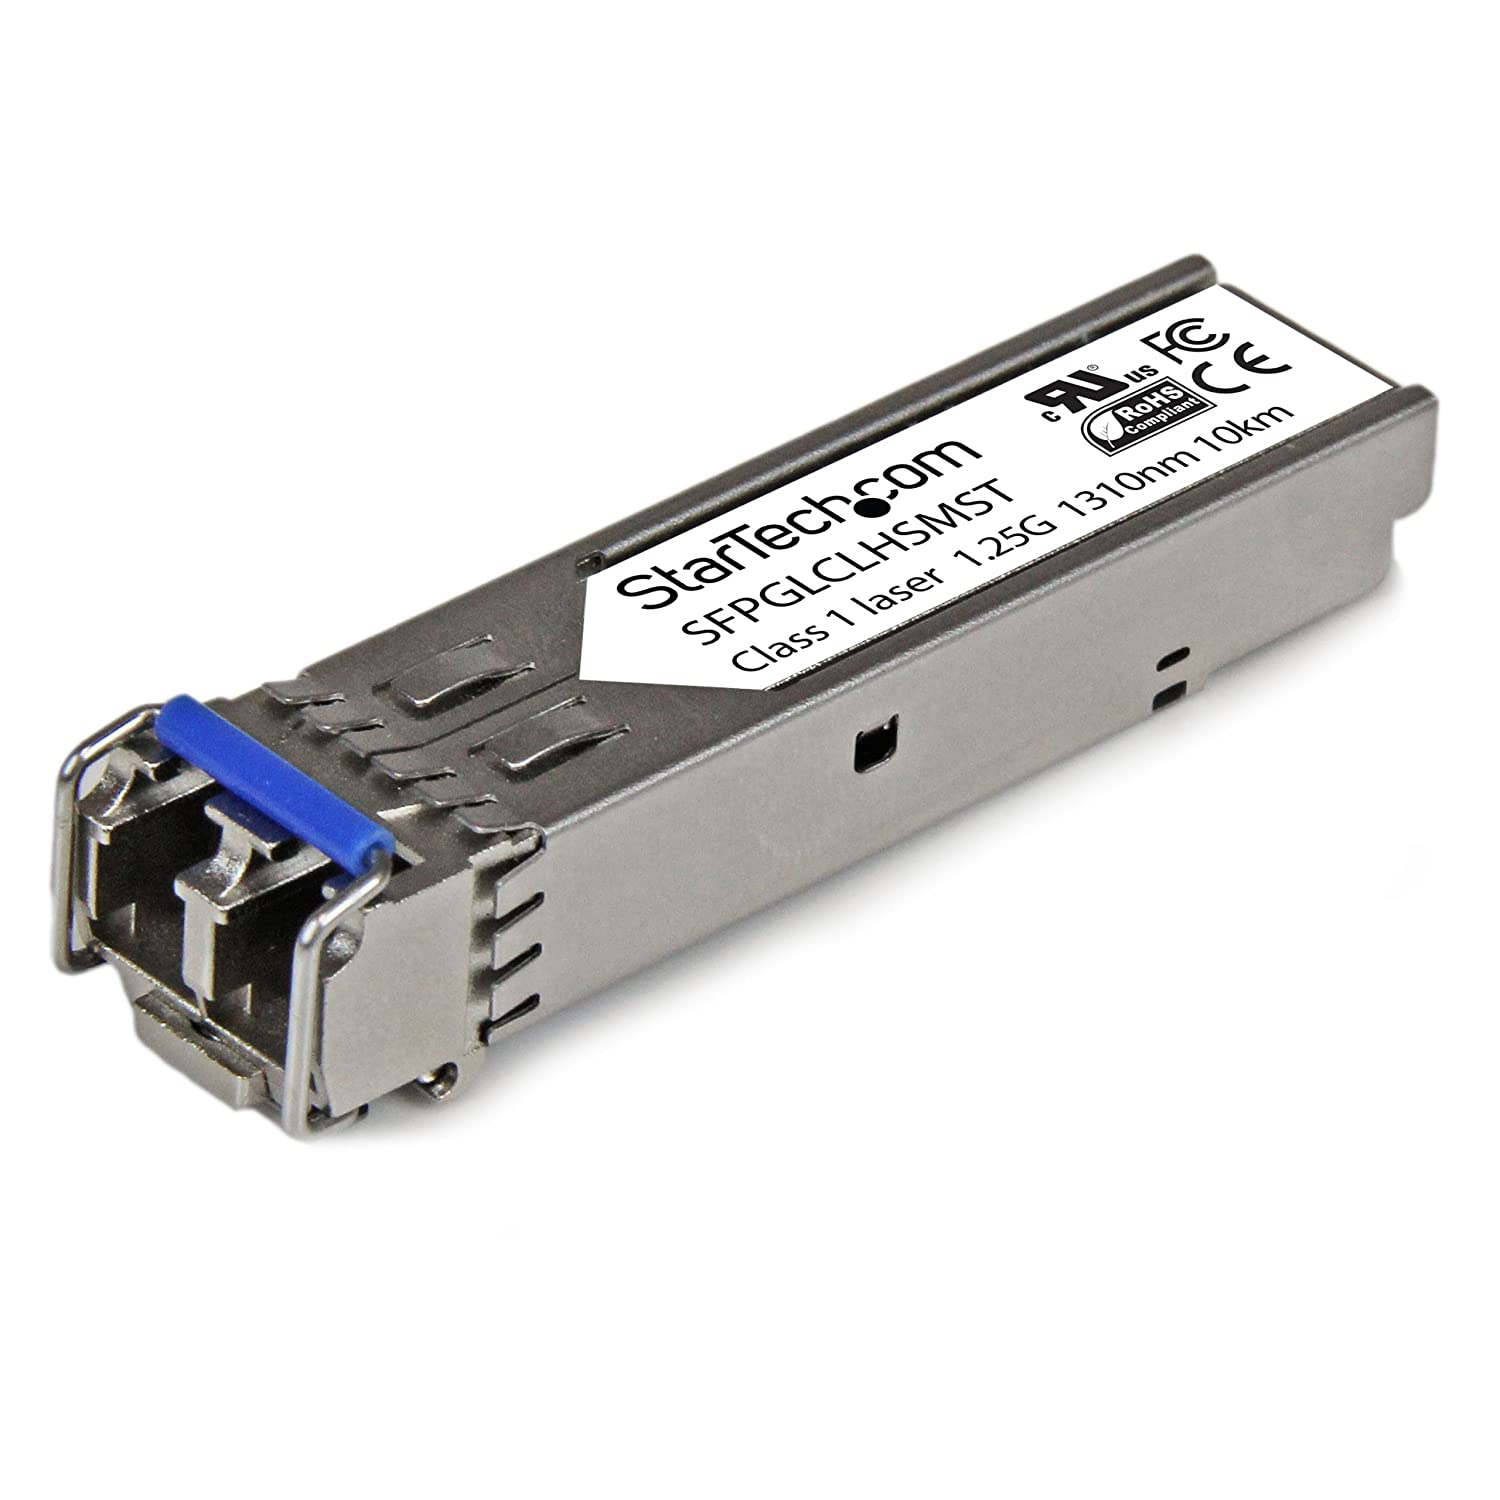 Amazon StarTech Cisco GLC LH SM patible SFP Module 1000BASE LX LH Fiber Optical Transceiver SFPGLCLHSMST puters & Accessories